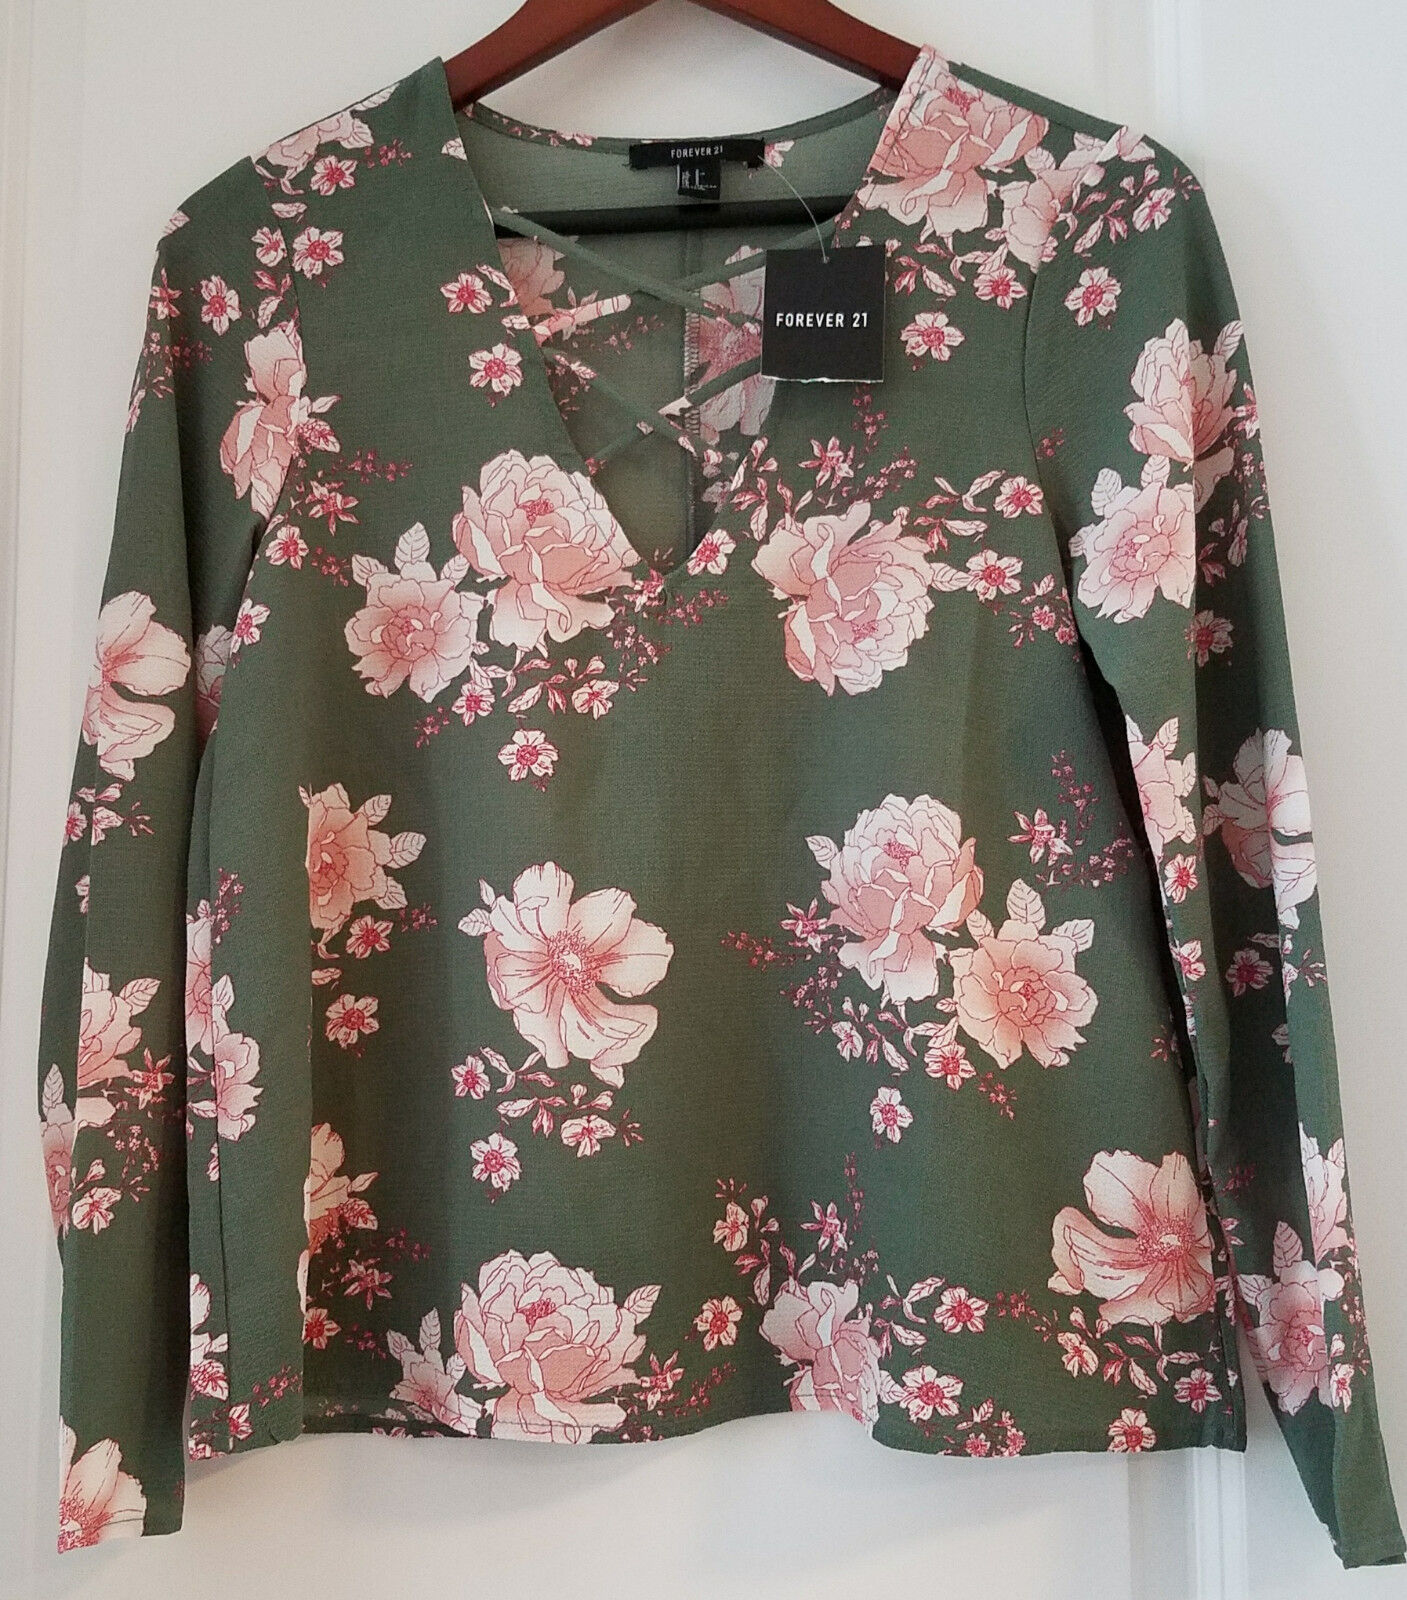 (4) Brand New Women's Small Shirts (1) H&M (2) Forever 21 & (1) Unknown